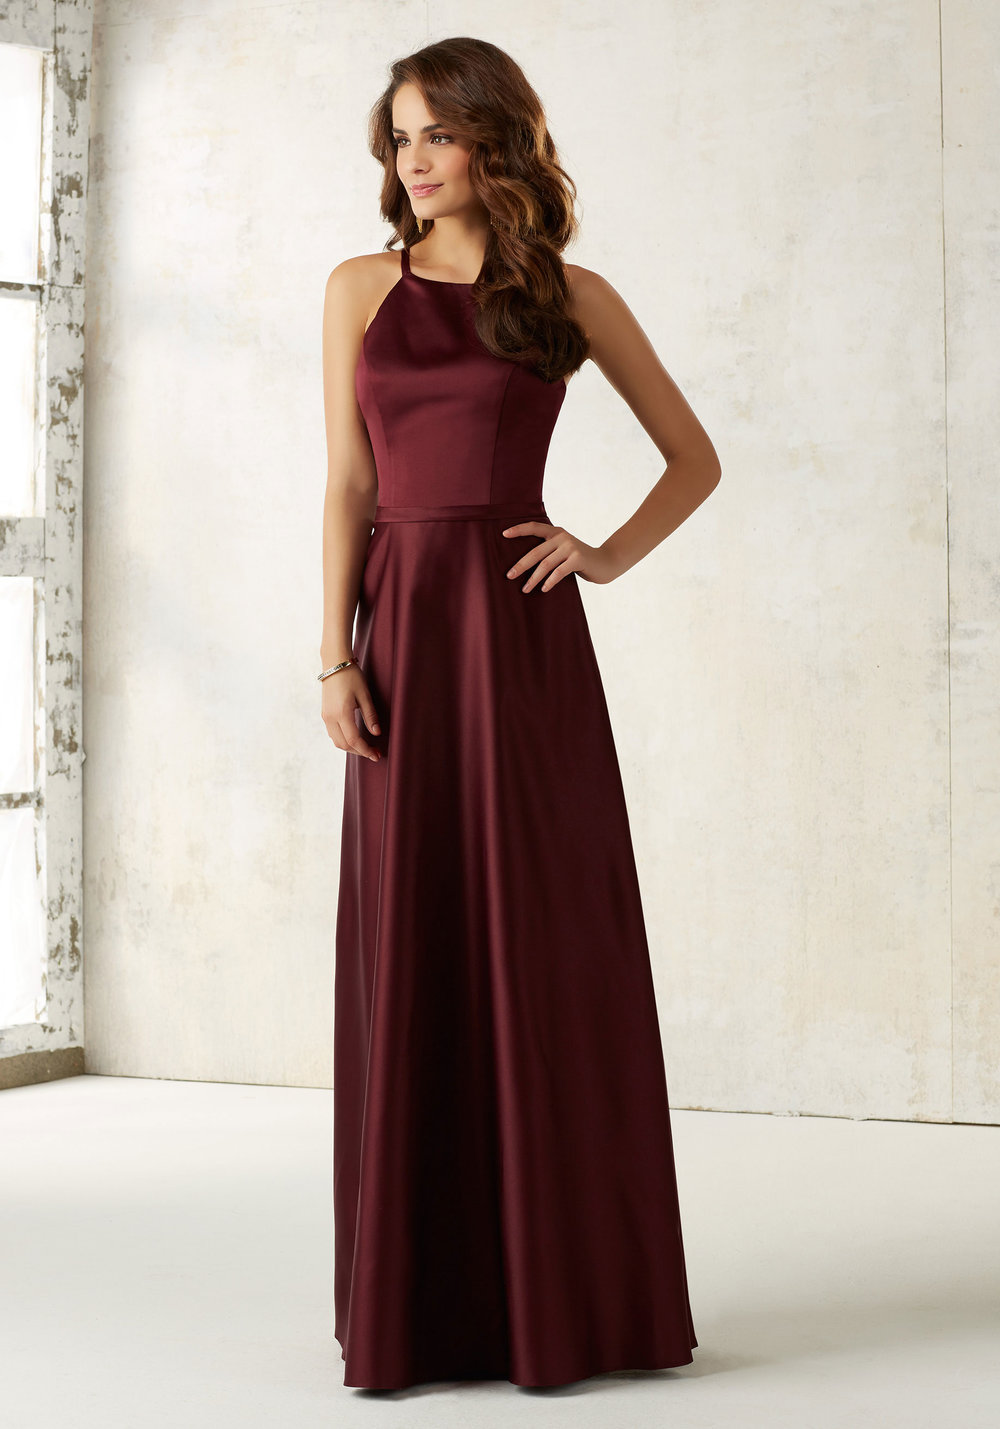 Satin Bridesmaids dress with pockets